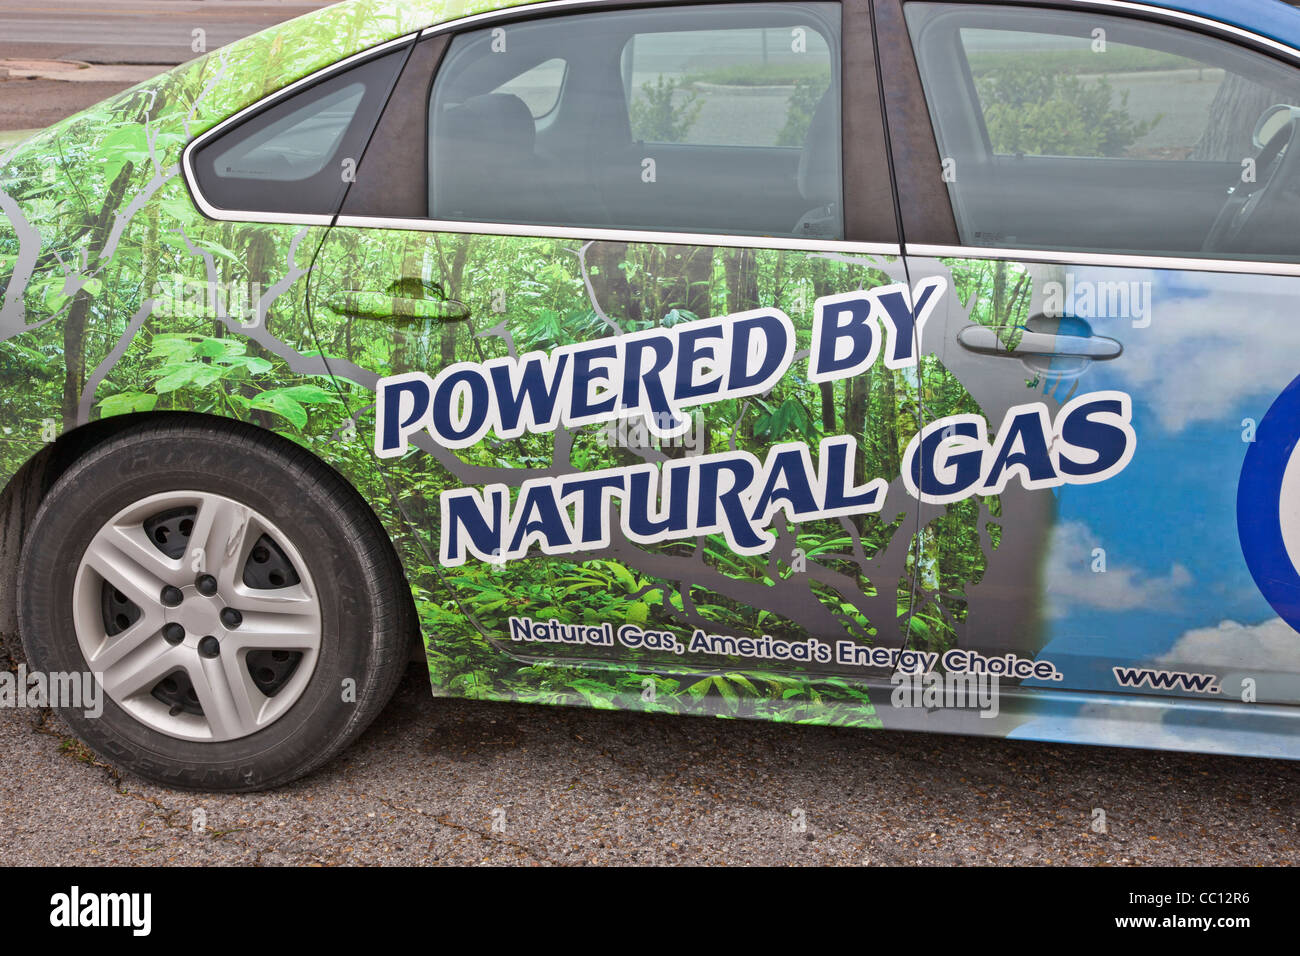 Passenger vehicle powered with natural gas. - Stock Image